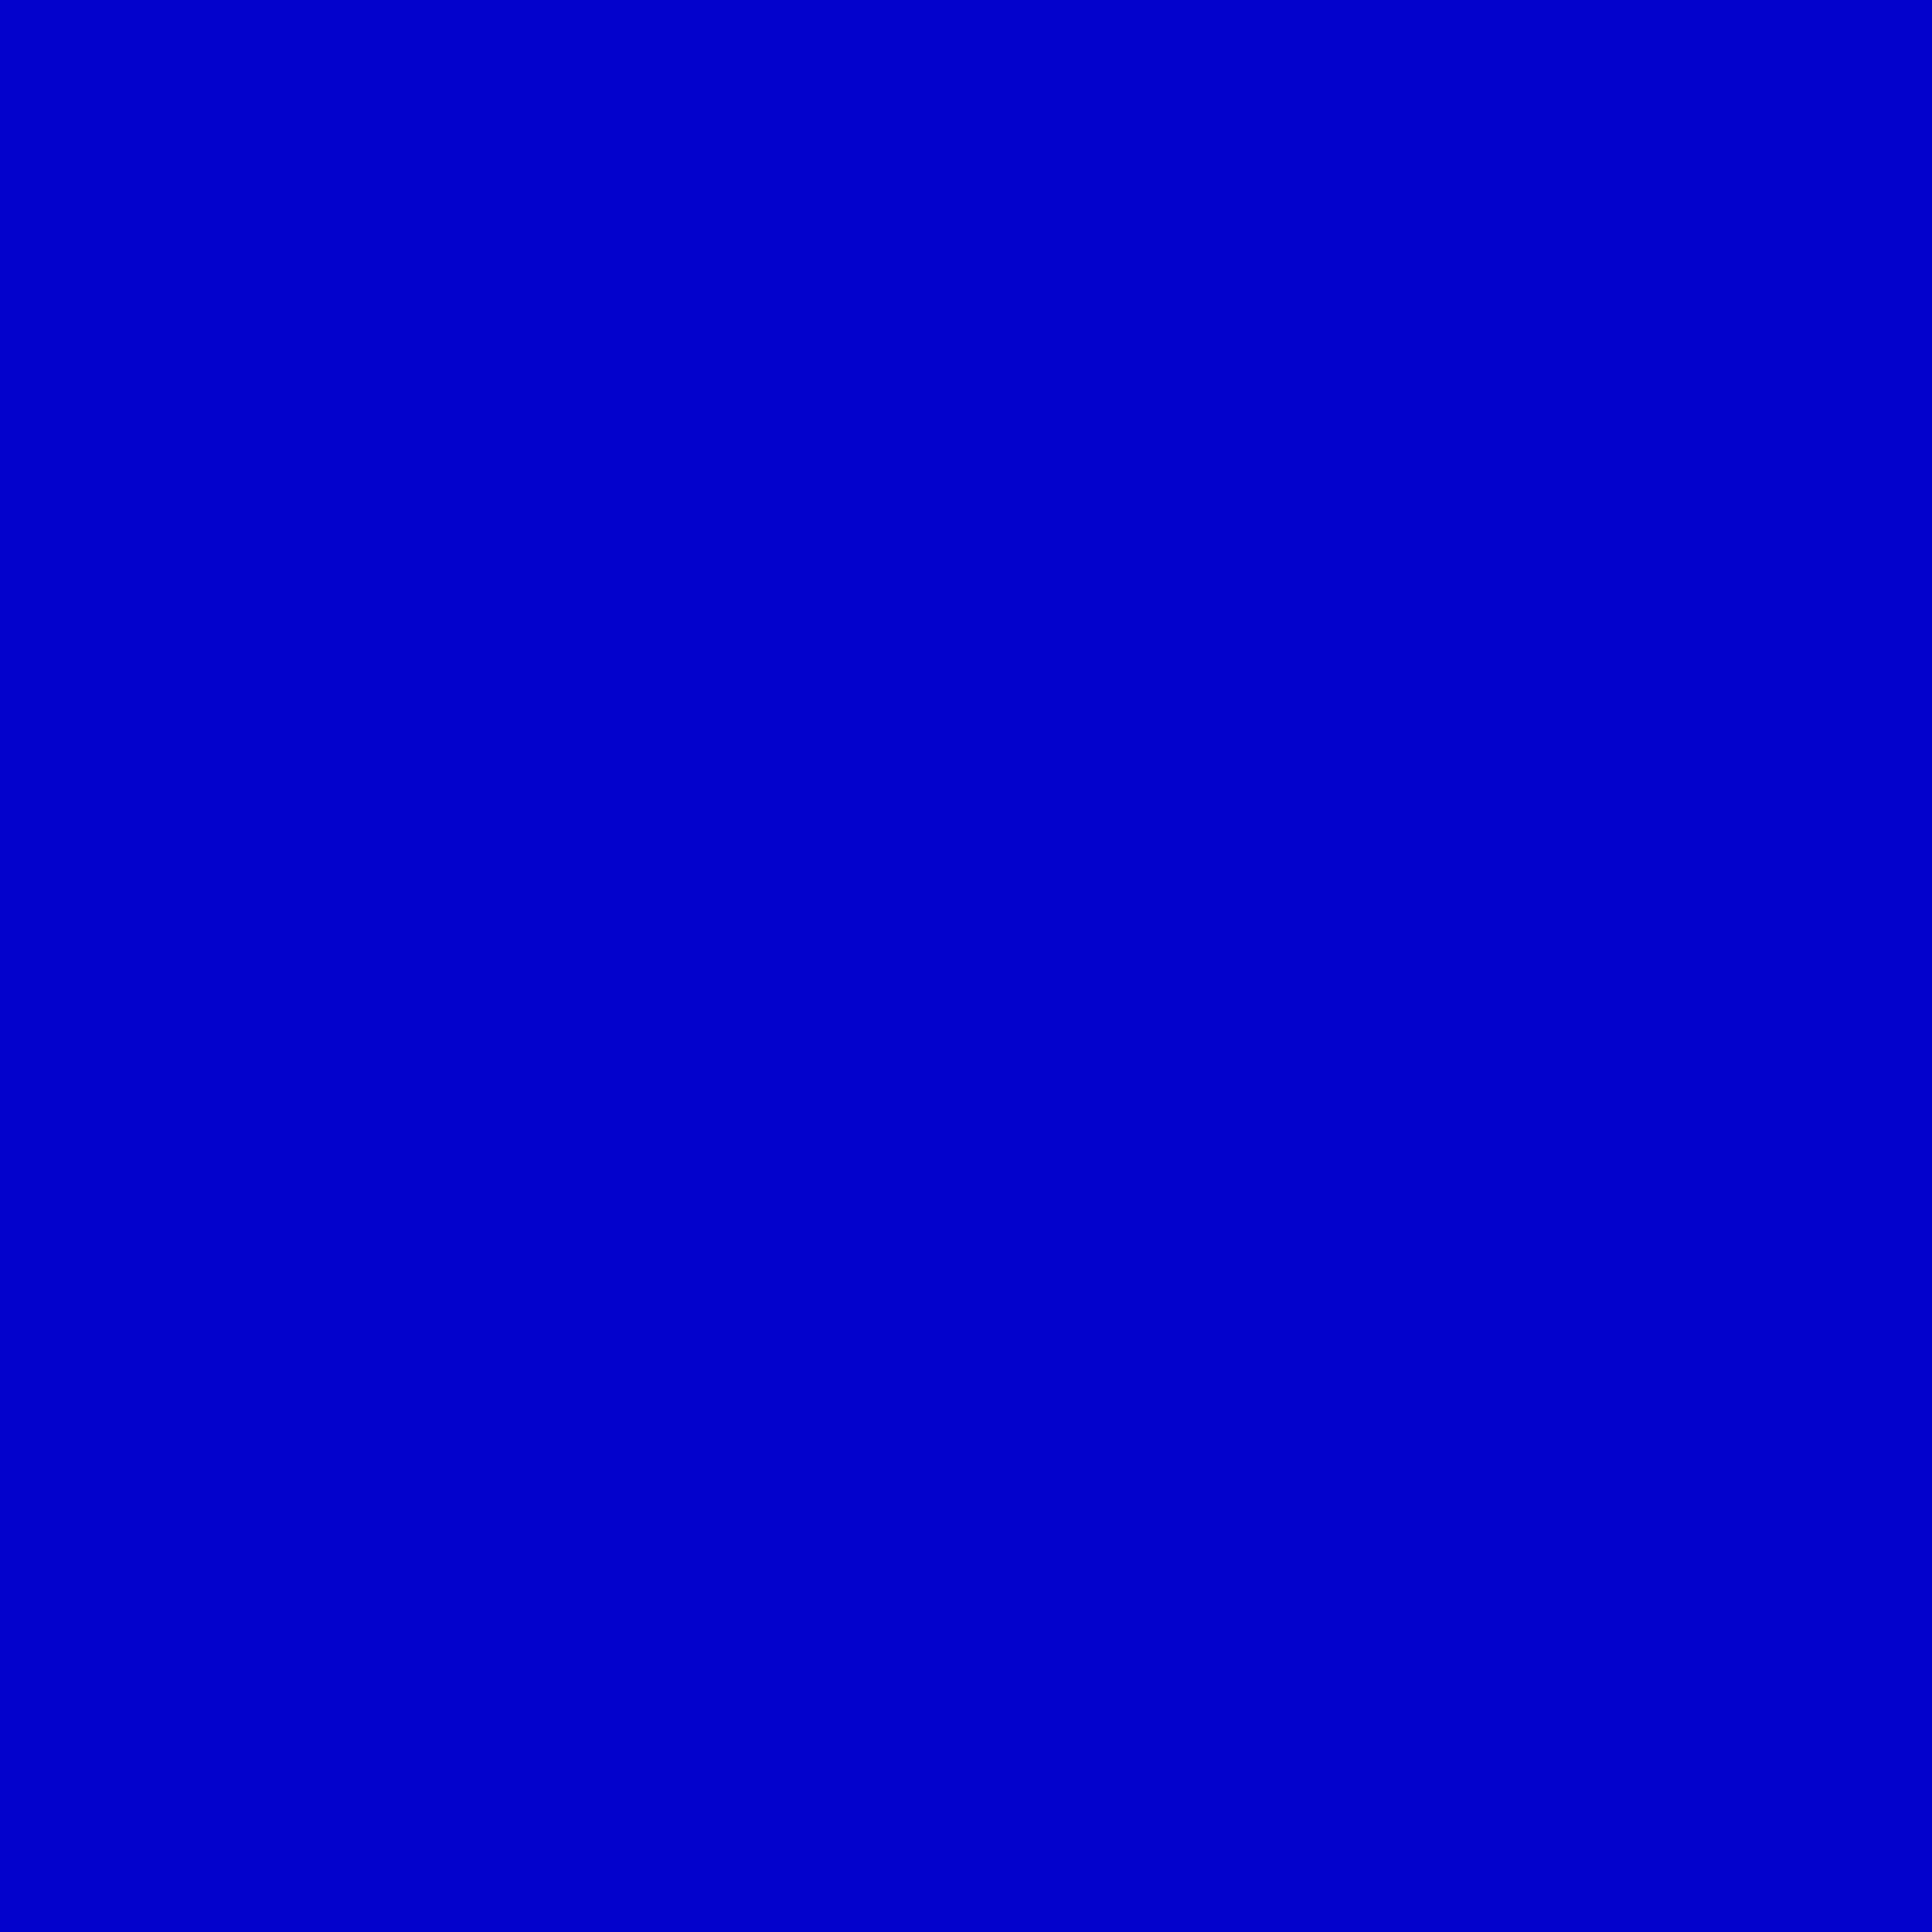 3600x3600 Medium Blue Solid Color Background